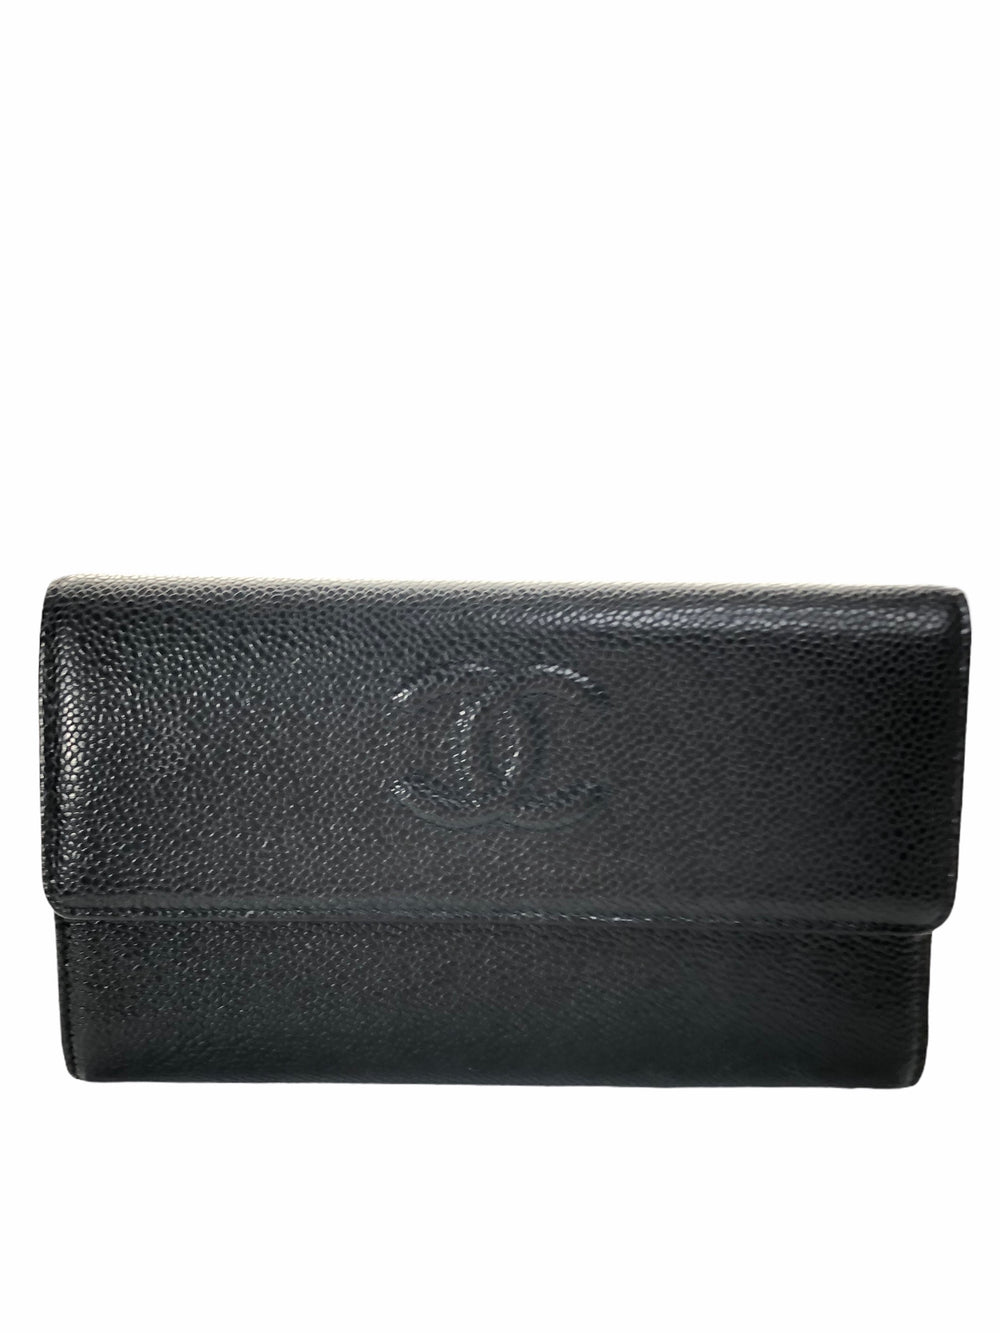 PART PAYMENT ONLY - Chanel Black Caviar Leather Wallet - As Seen on Instagram 4/11/2020